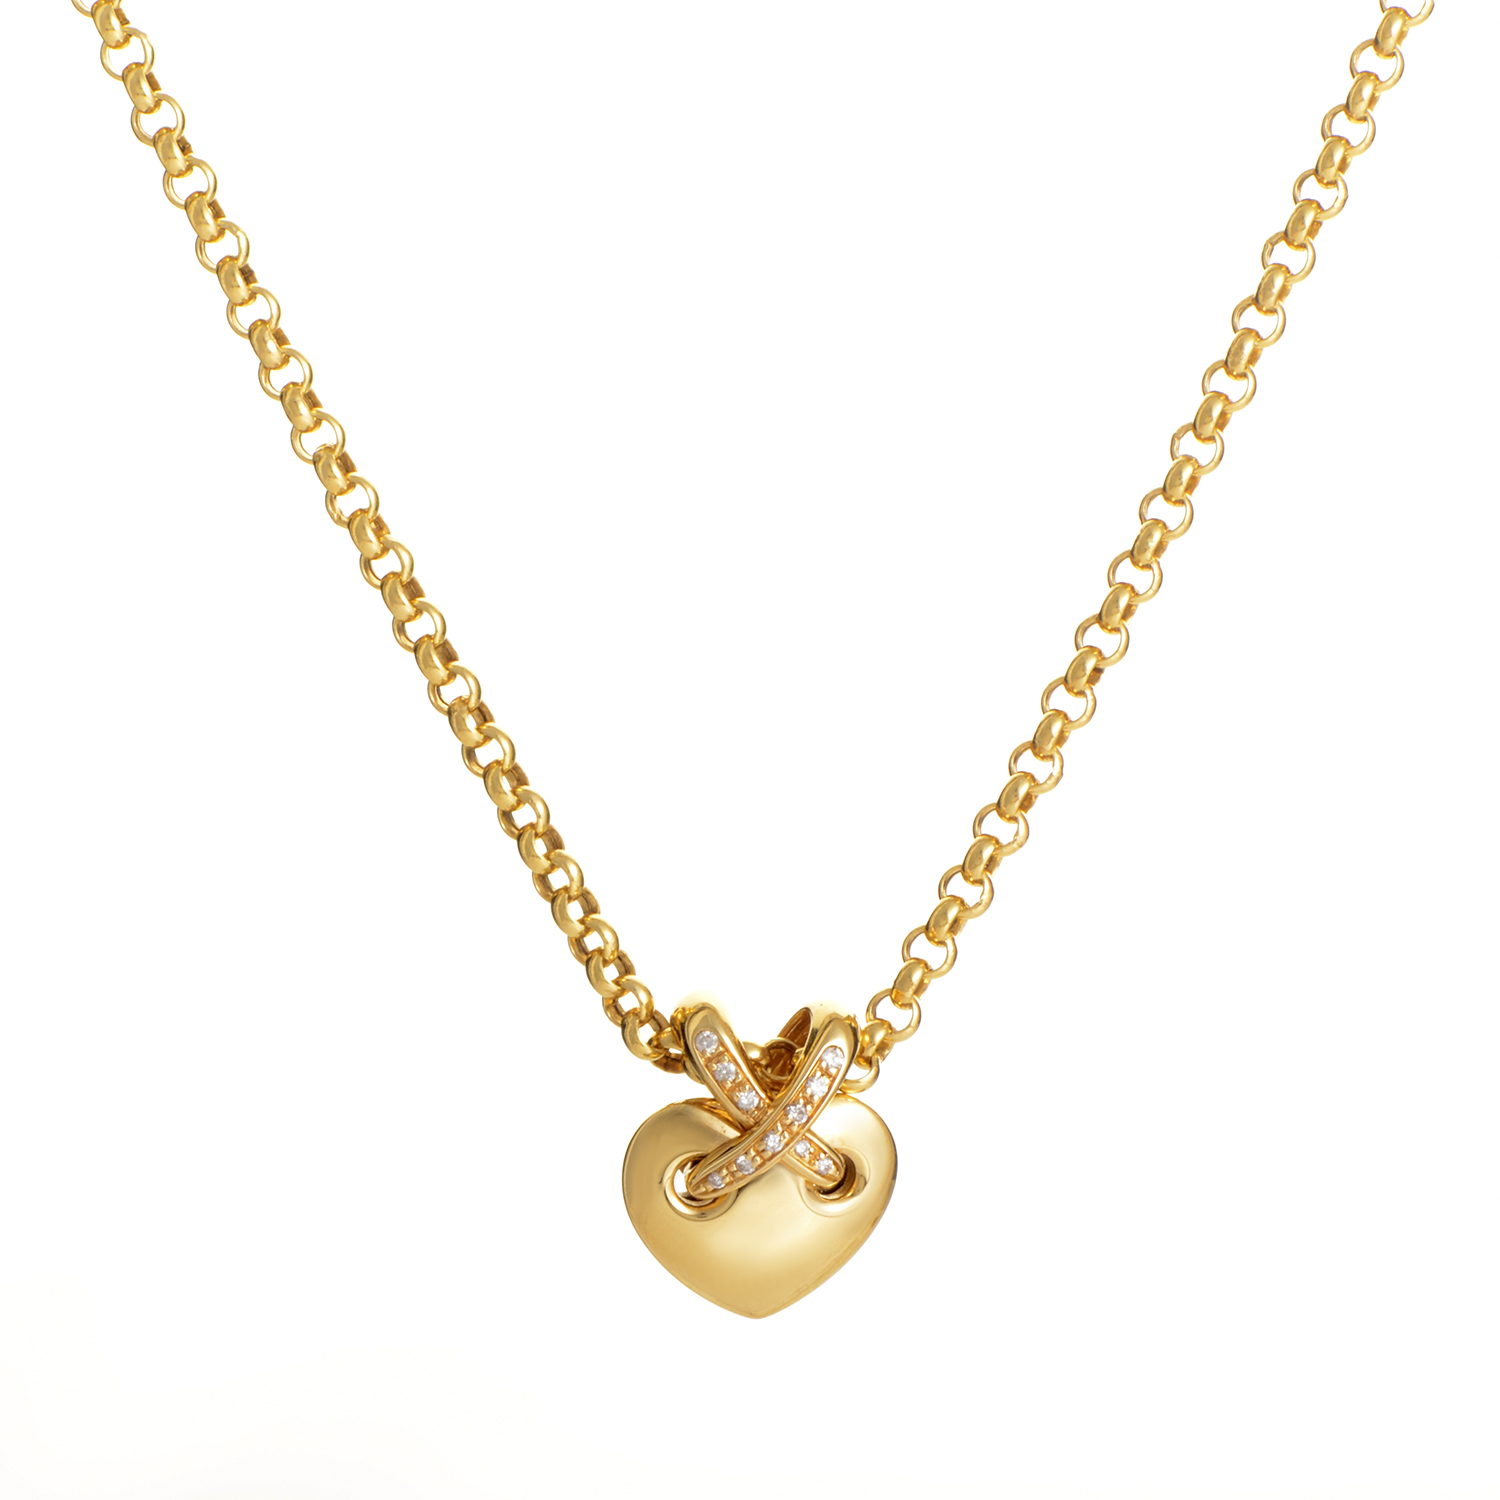 Chaumet Liens 18K Yellow Gold Diamond Heart Pendant Necklace